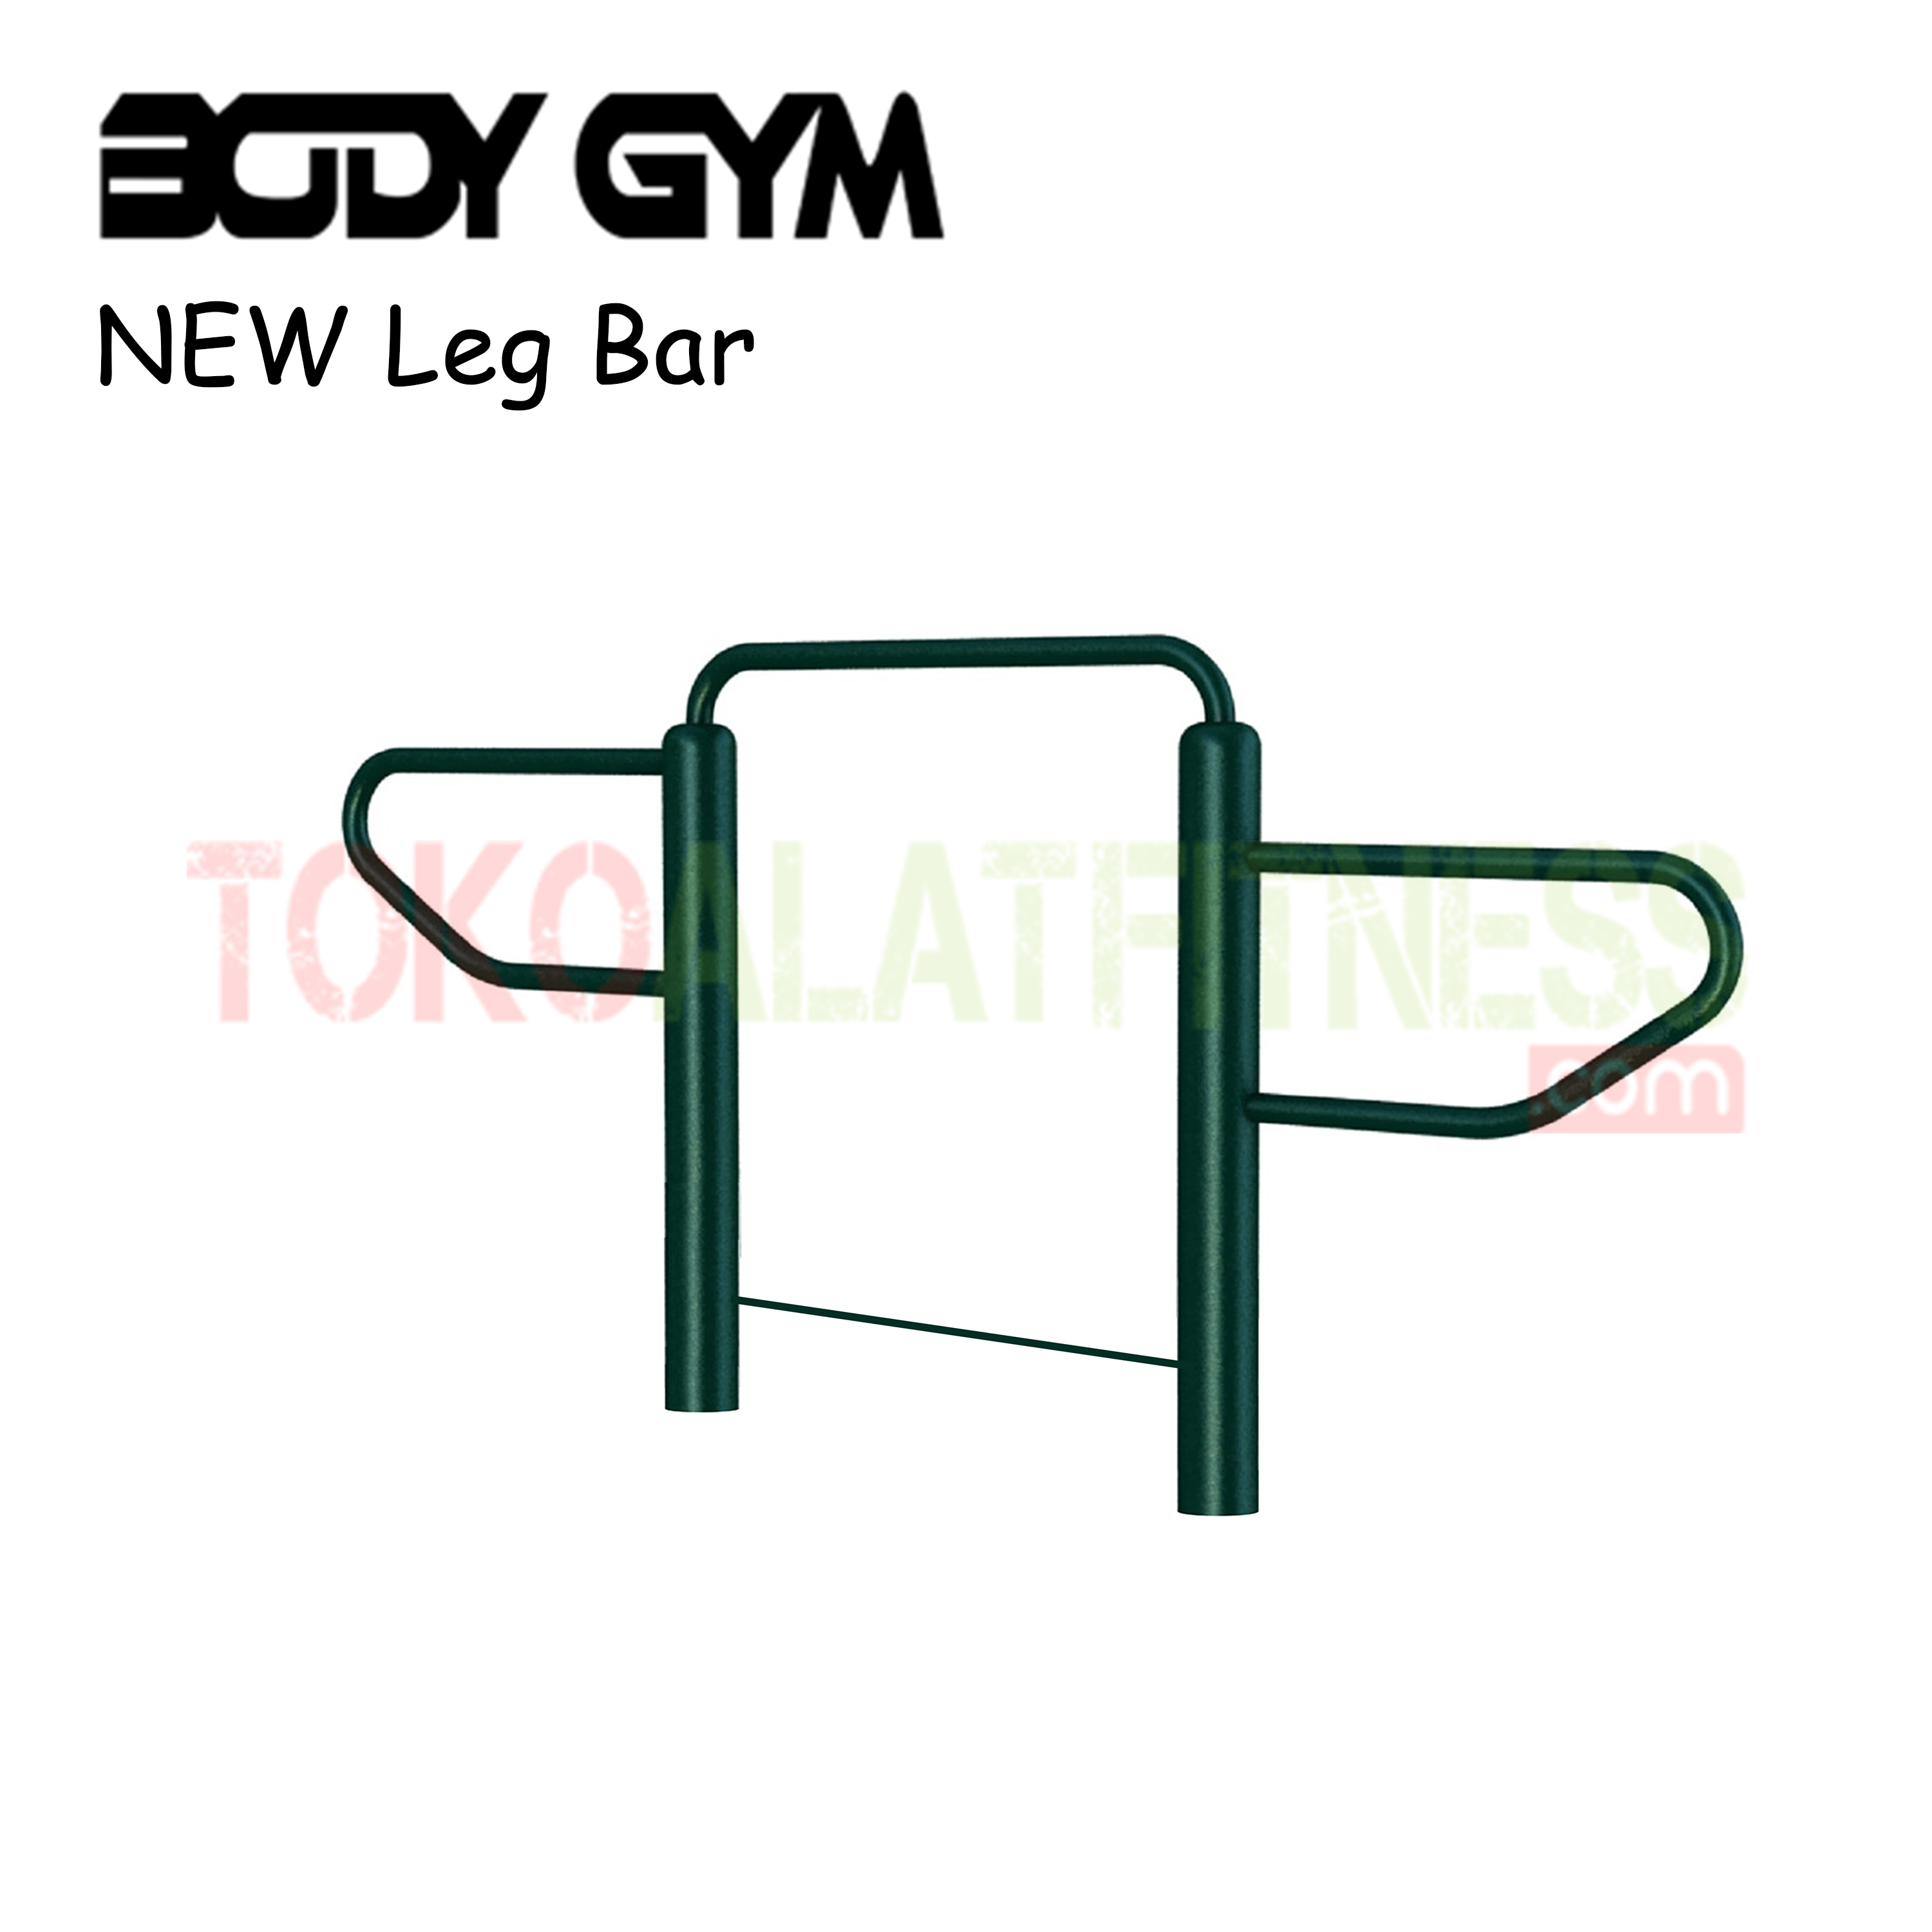 AFO 46 Alat Fitness Outdoor NEW LEG BAR - Alat Fitness Outdoor - New Leg Bar AFO-46